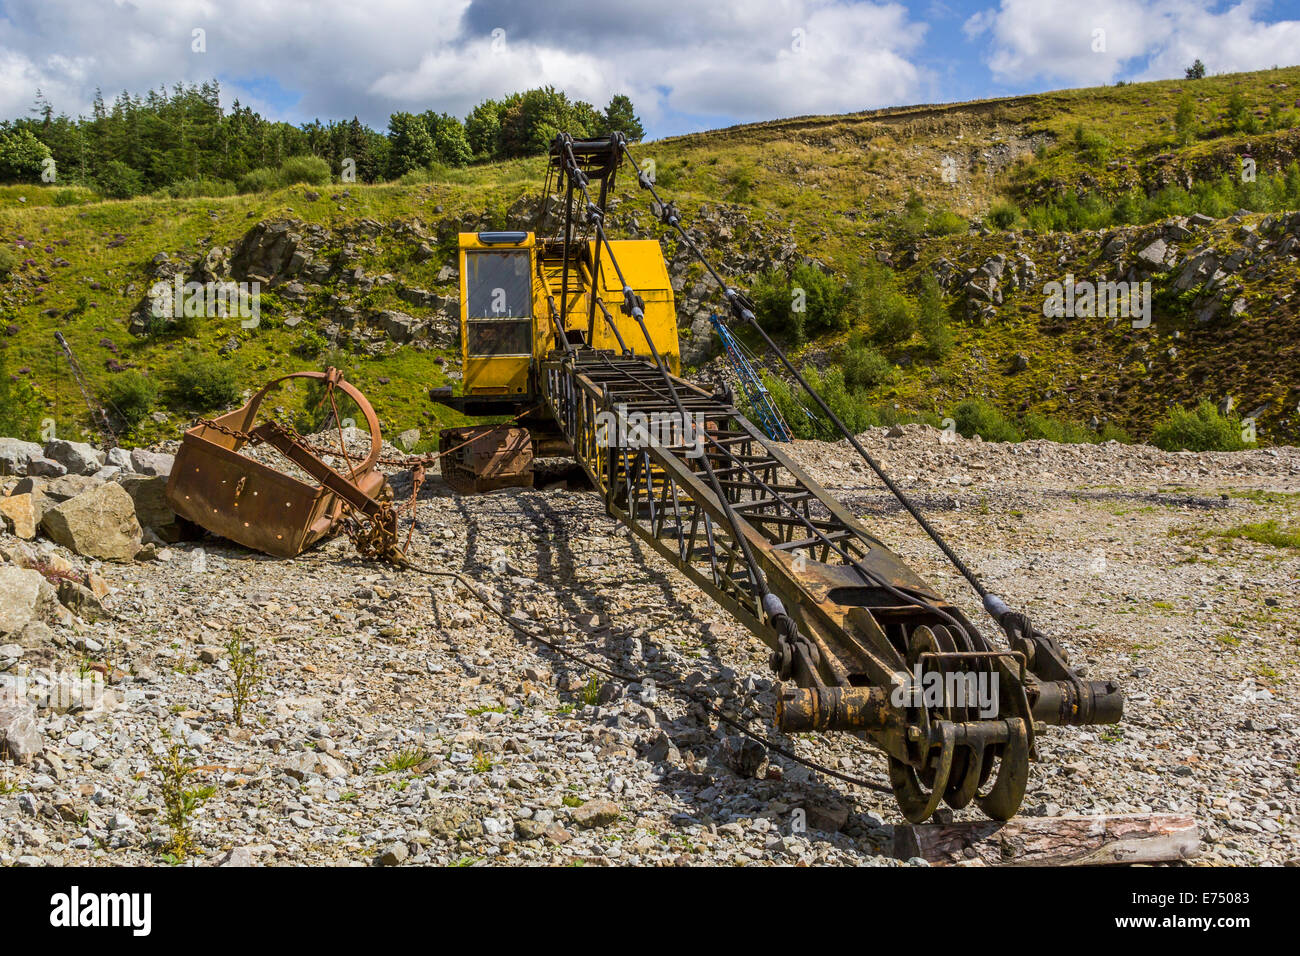 A Dragline excavator at a mining museum. Stock Photo